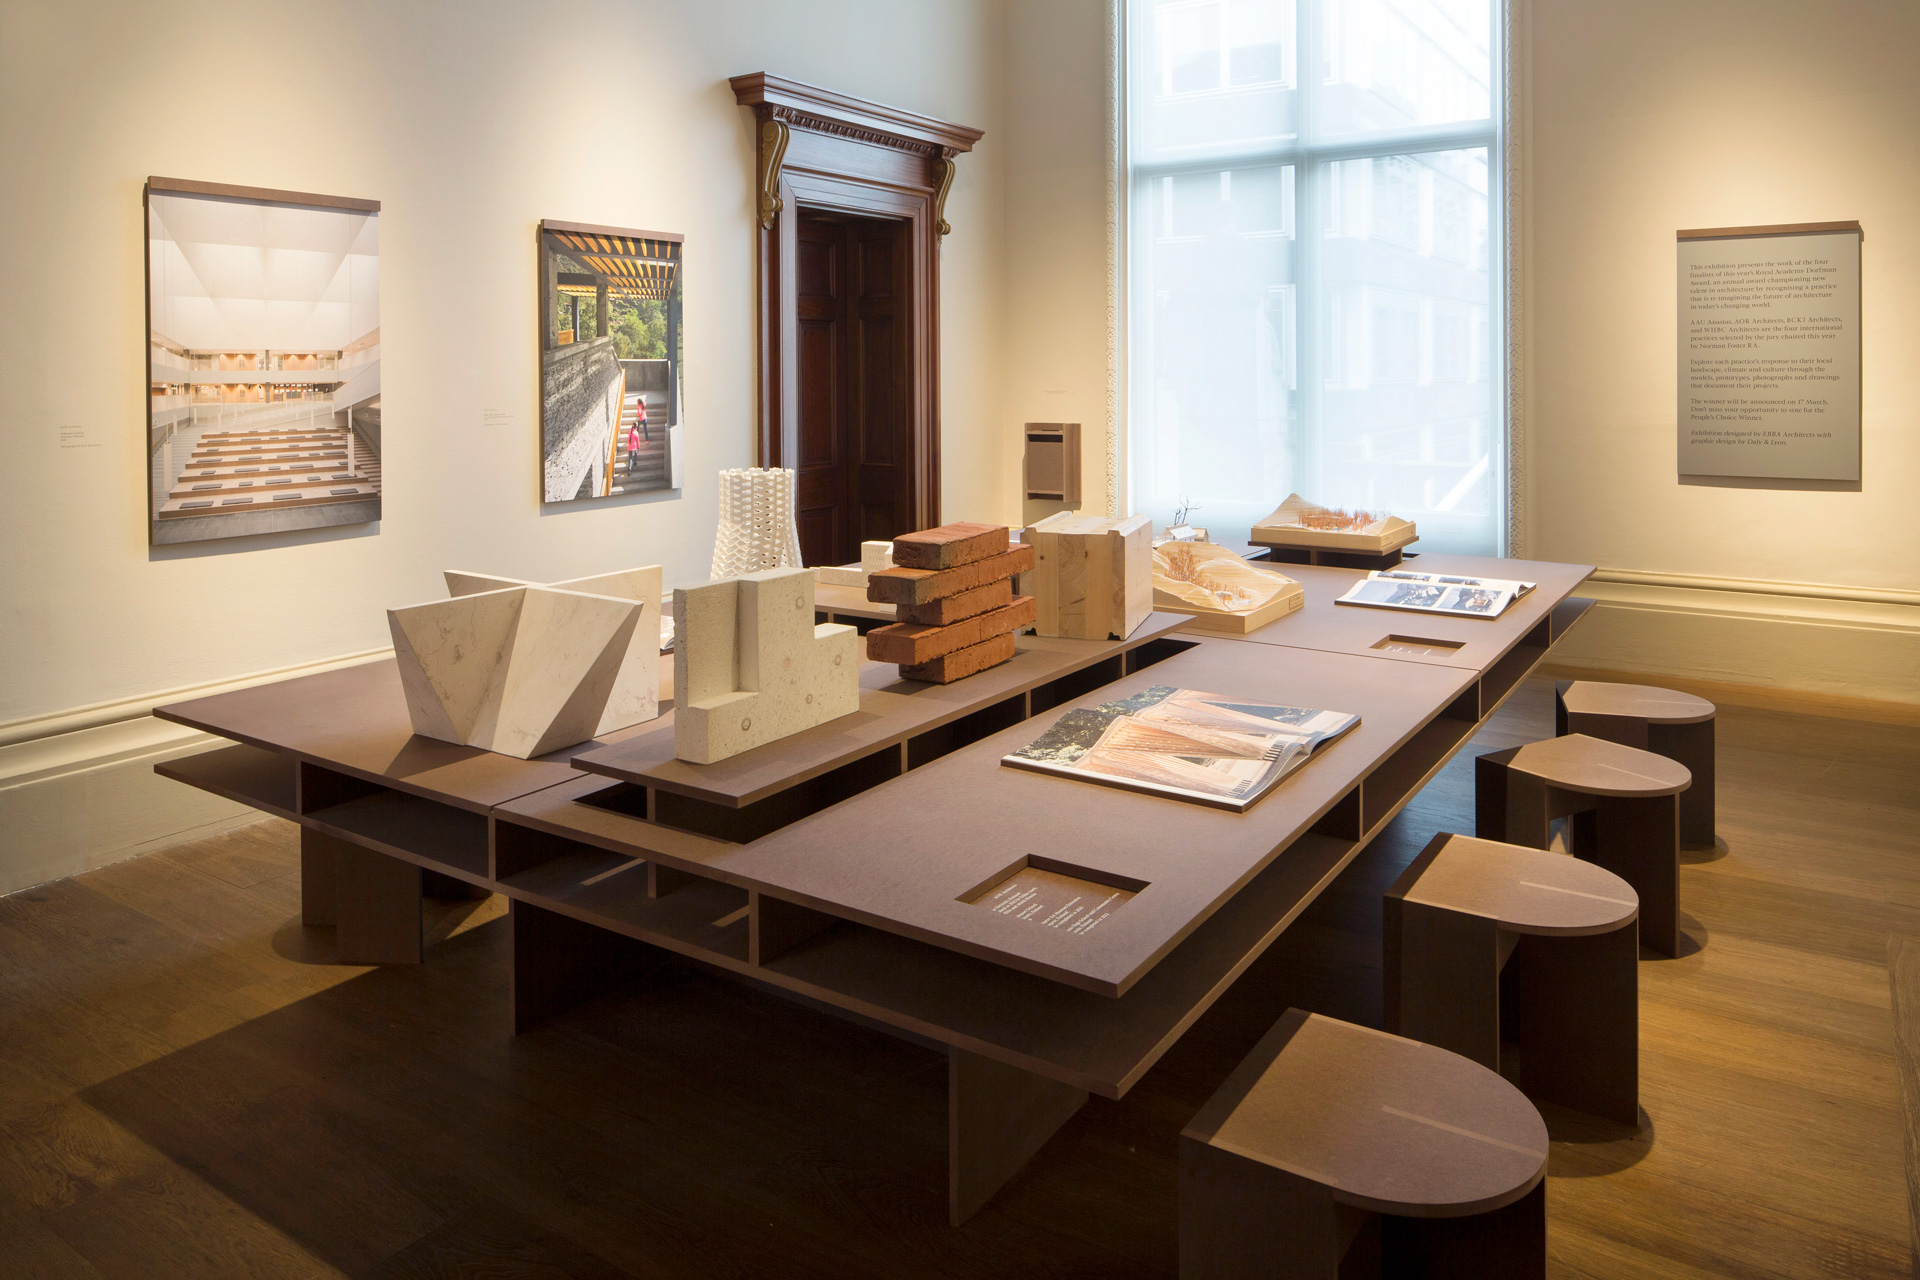 The Royal Academy Dorfman exhibition took place in 2020 at The Royal Acamedy London. We supported EBBA Architects. Click to read.